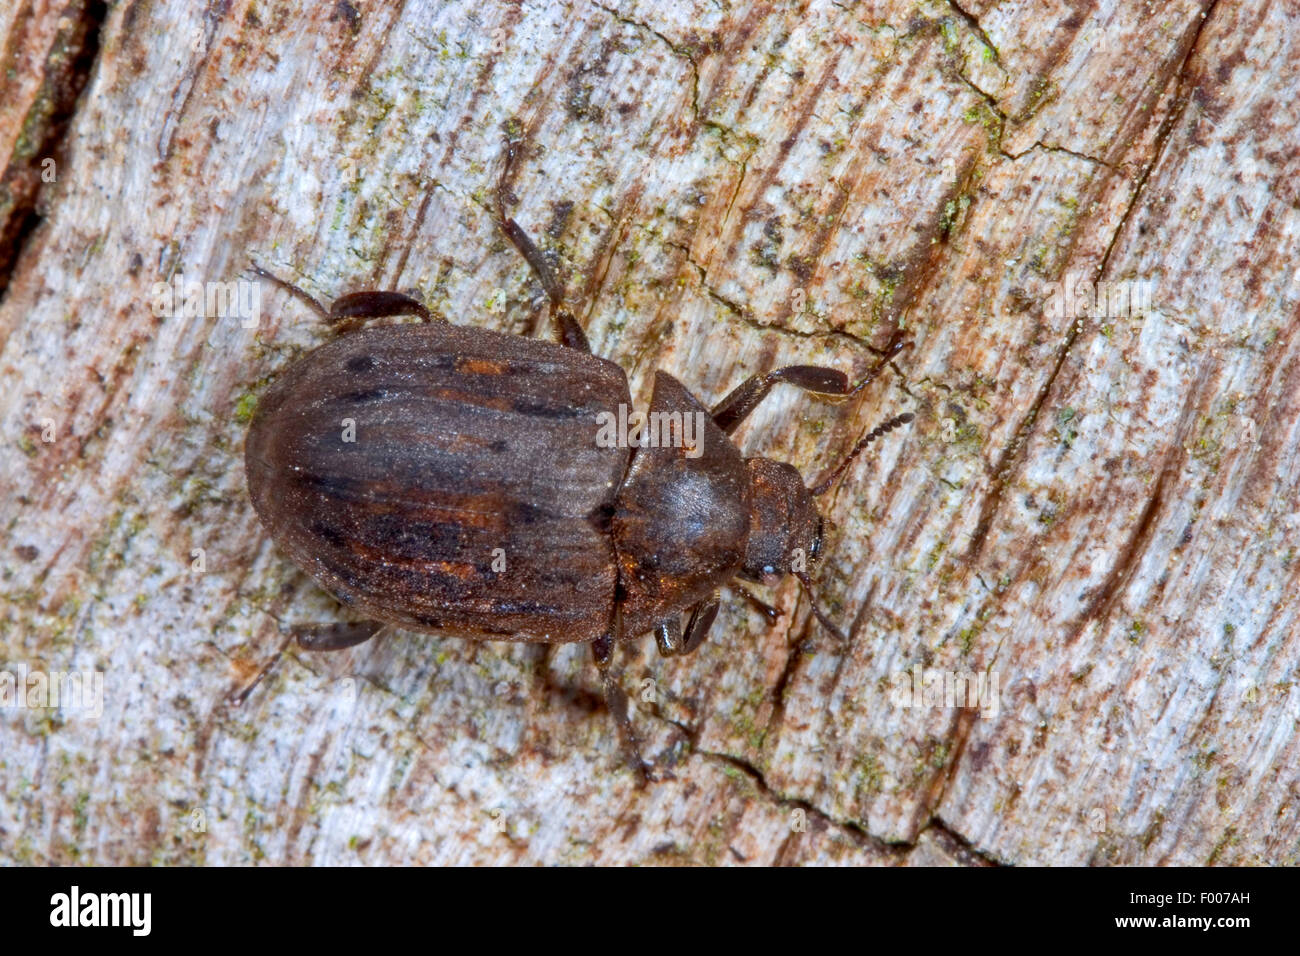 Pill beetle (Byrrhus pilula), sitting on wood, Germany - Stock Image